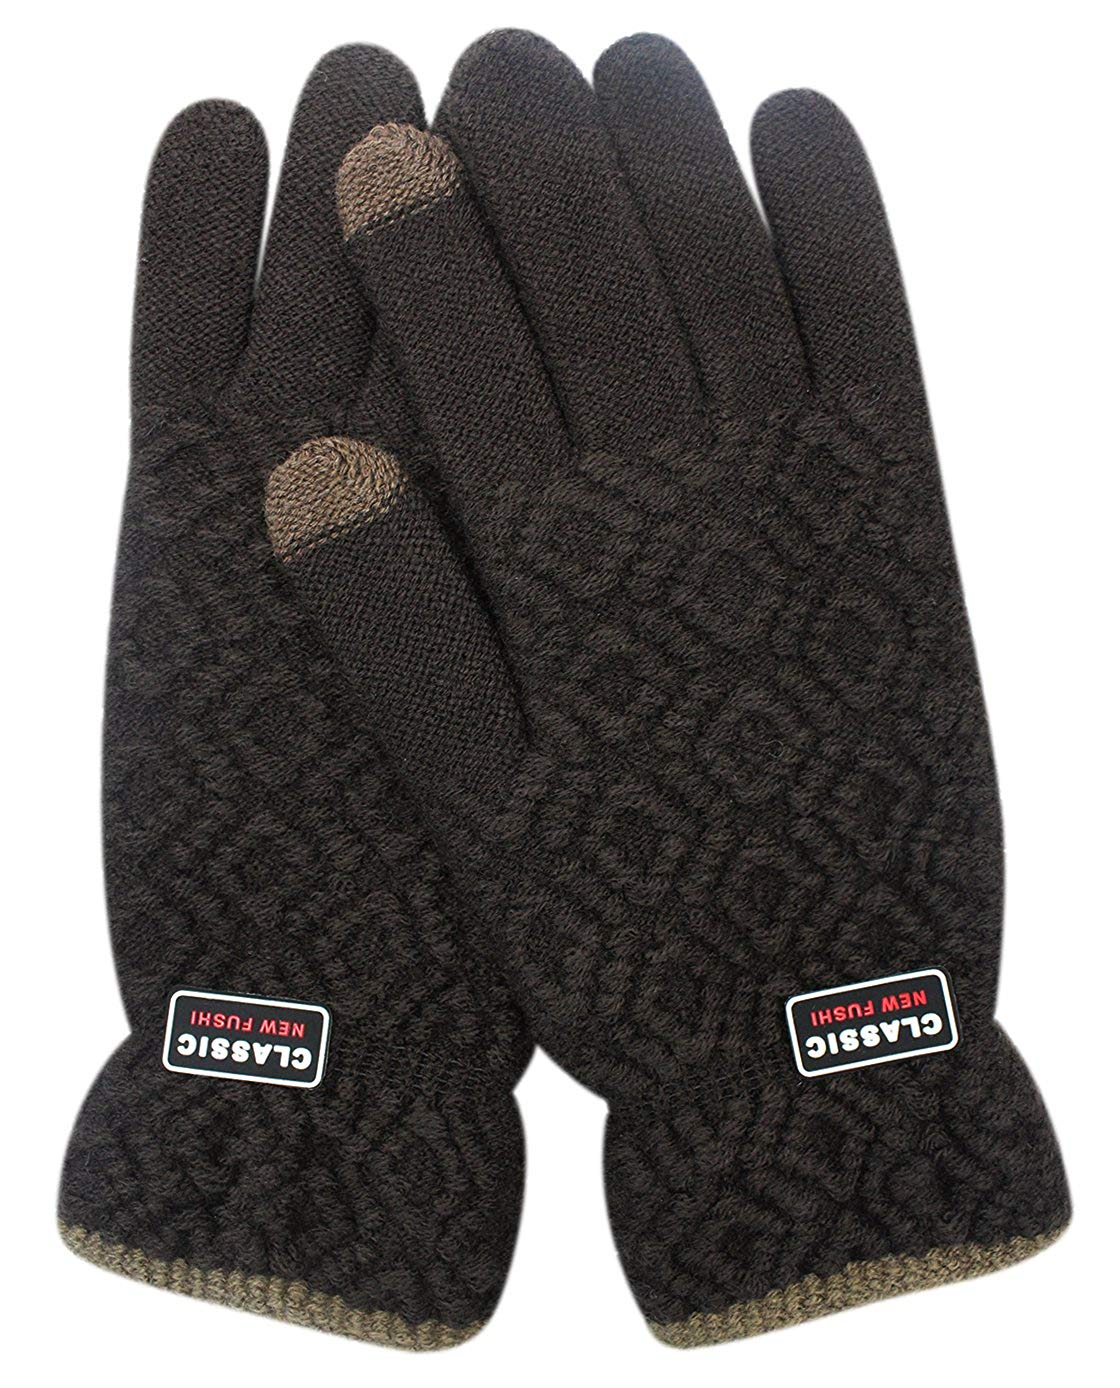 ce5f1e1b49bda Get Quotations · Mens Thick Knitted Wool Winter Gloves Warm Soft Mittens  with Touchscreen Fingers